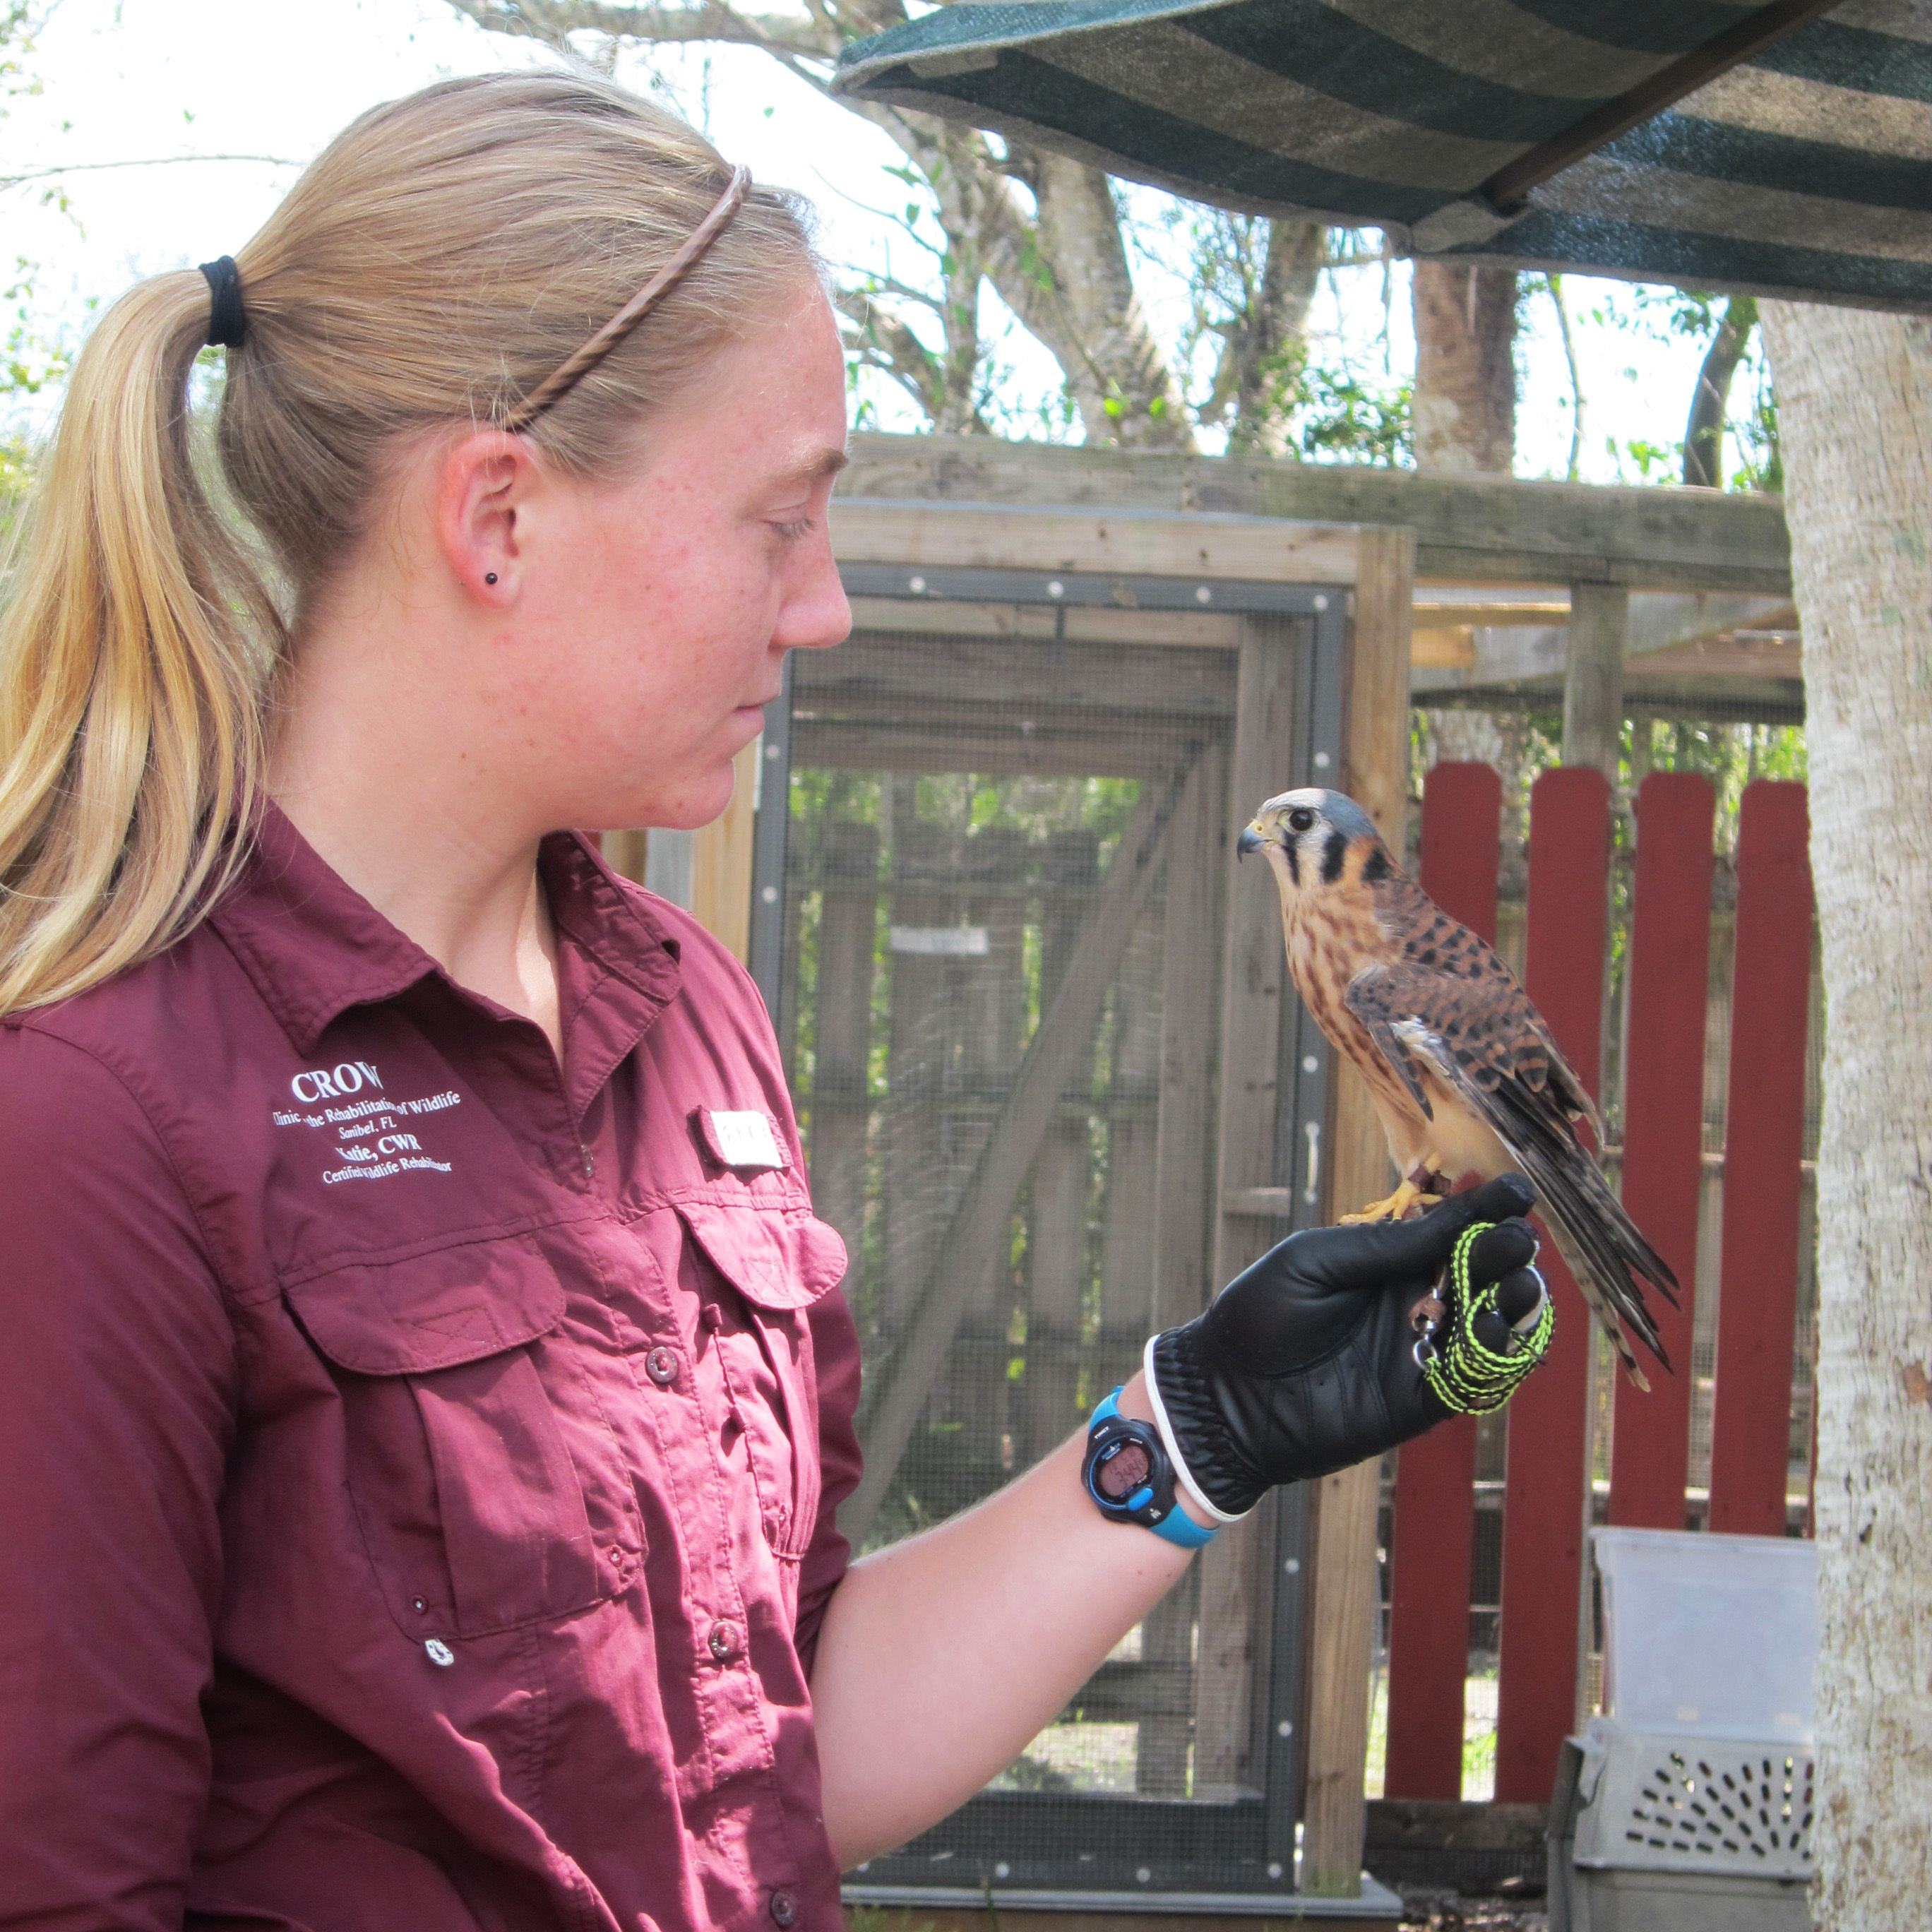 4-GIRL-HOLDING-LOLA-Caption-CROW-wildlife-rehabilitator-Katie-Mueller-holds-Lola-the-American-Kestrel-one-of-the-clinics-ambassador-animals.-Lola-has-an-irreparable-broken-wing-so-she-lives-at-the-clinic-rather-than-in-the-wild.-jpg.jpg?mtime=20180609213023#asset:102091